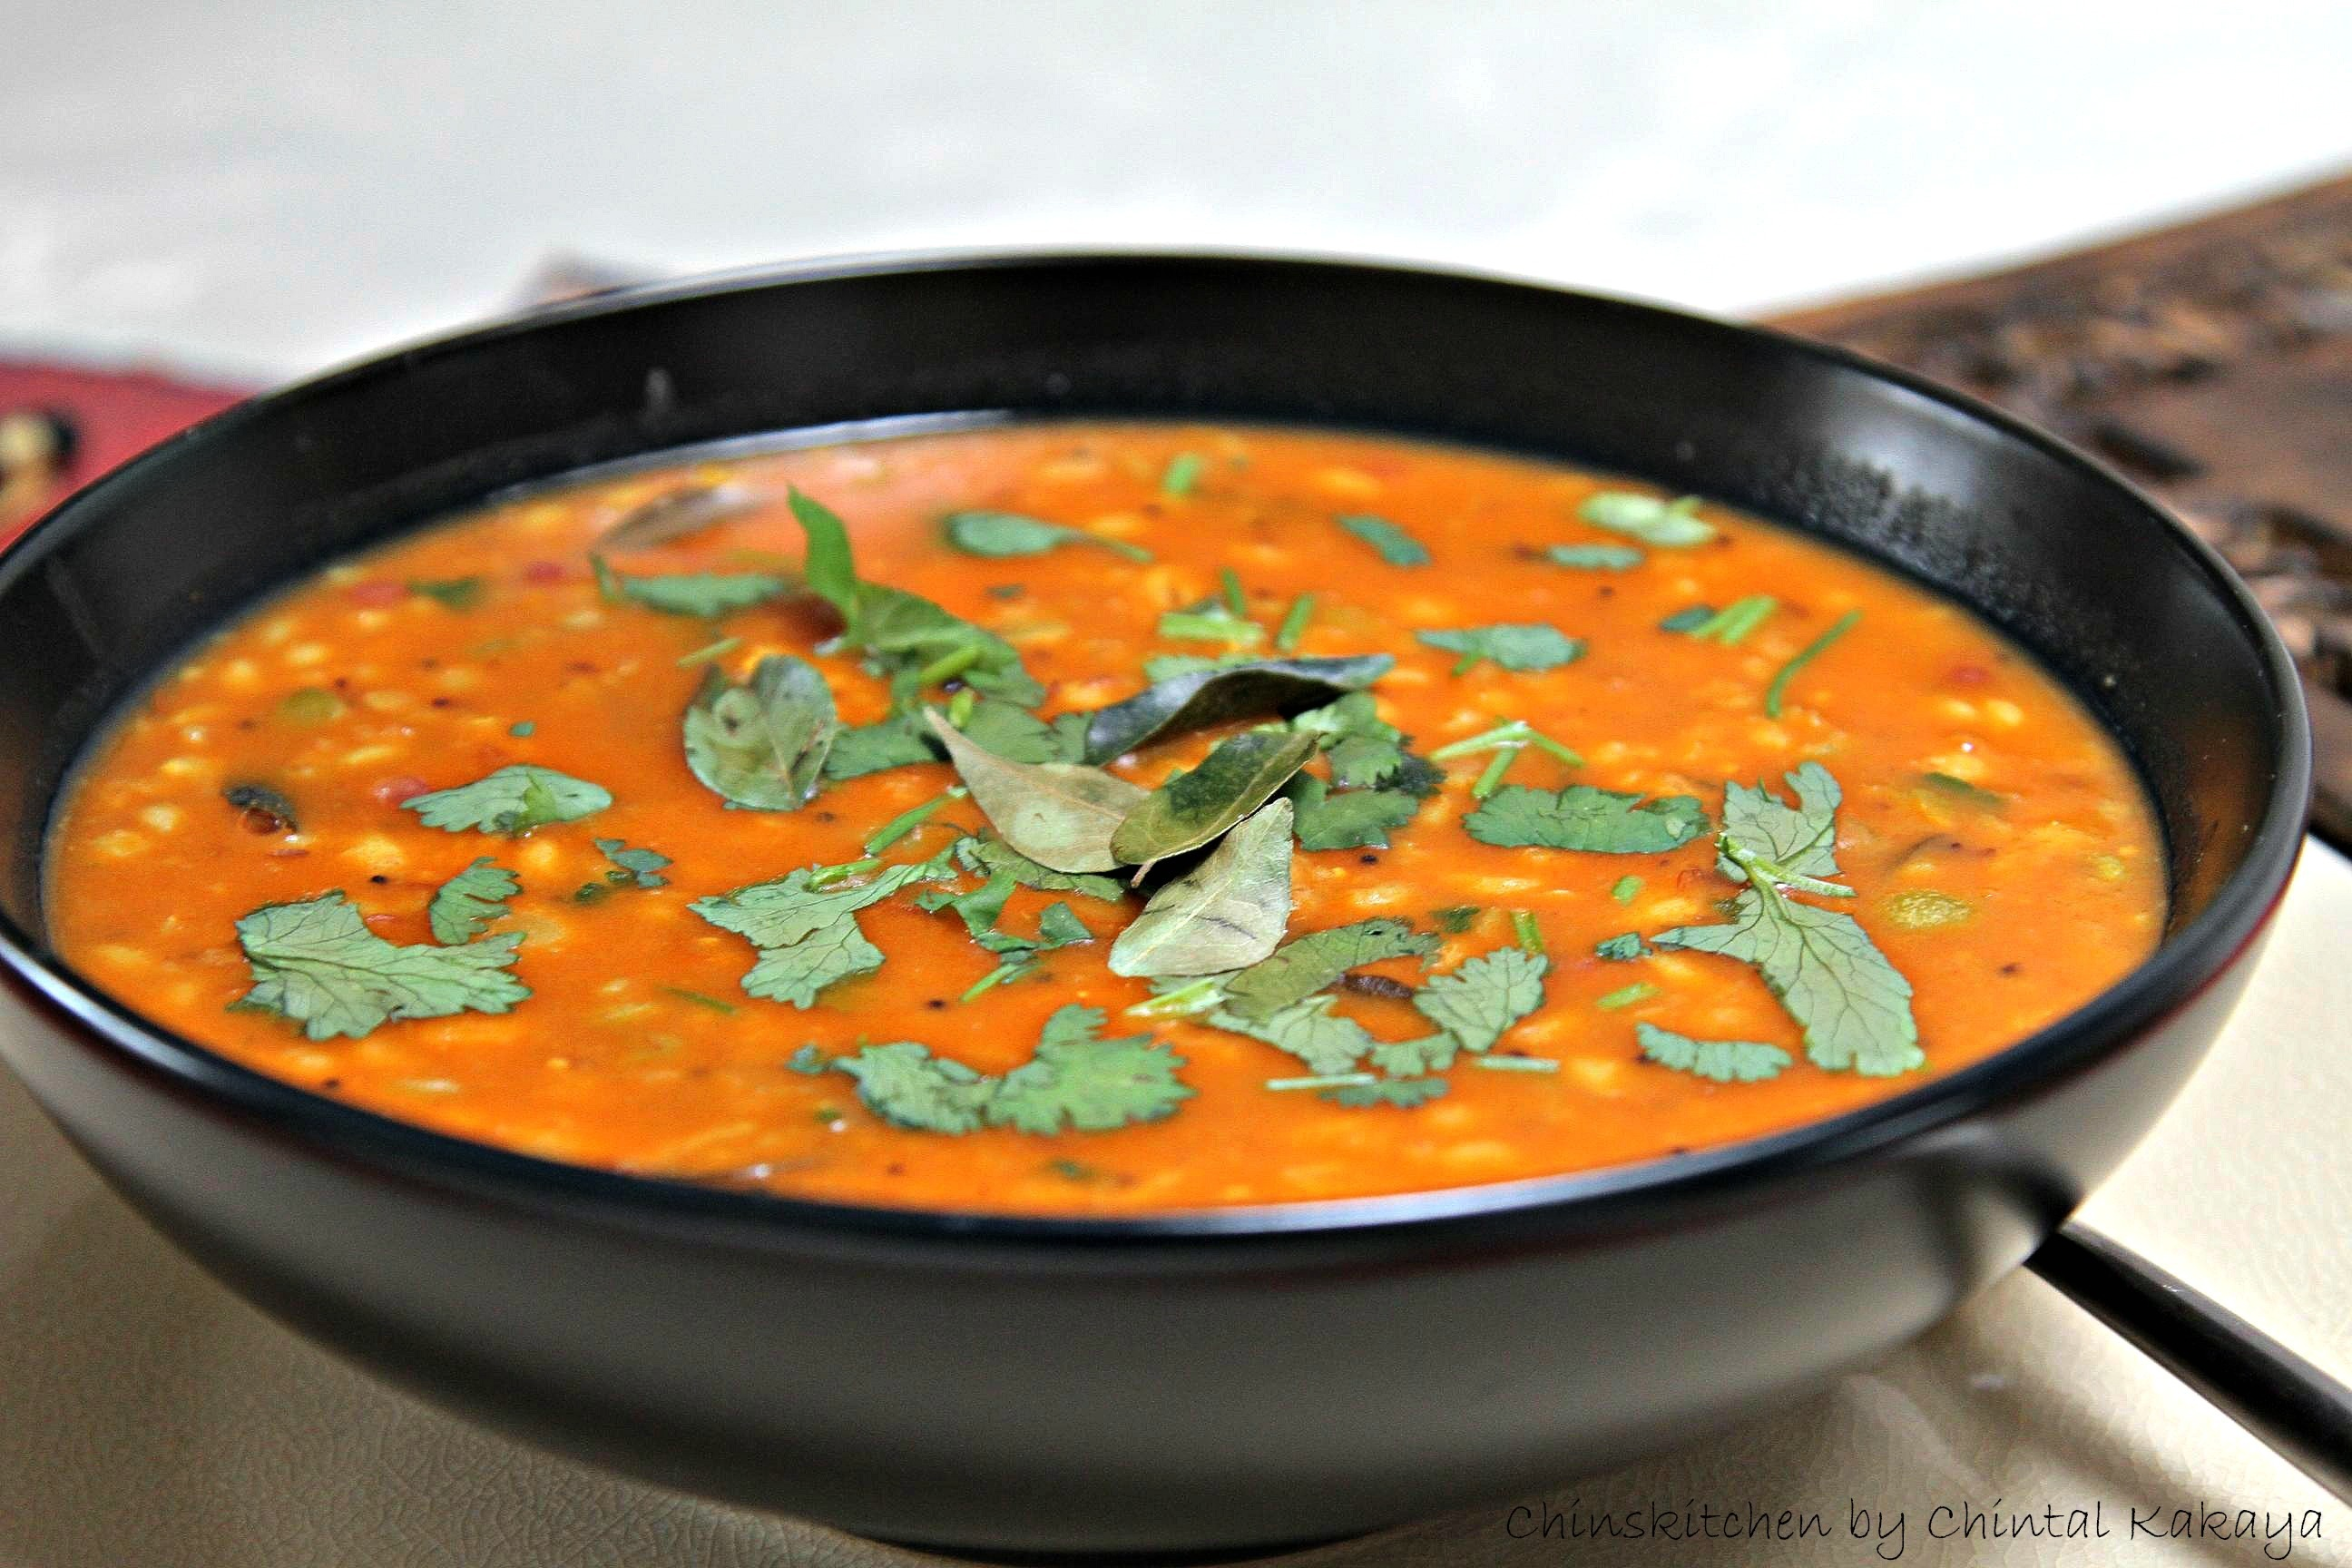 Gujarati Spiced Thick Country Soup- Vegan, Dairy Free, Sugar Free, Low oil